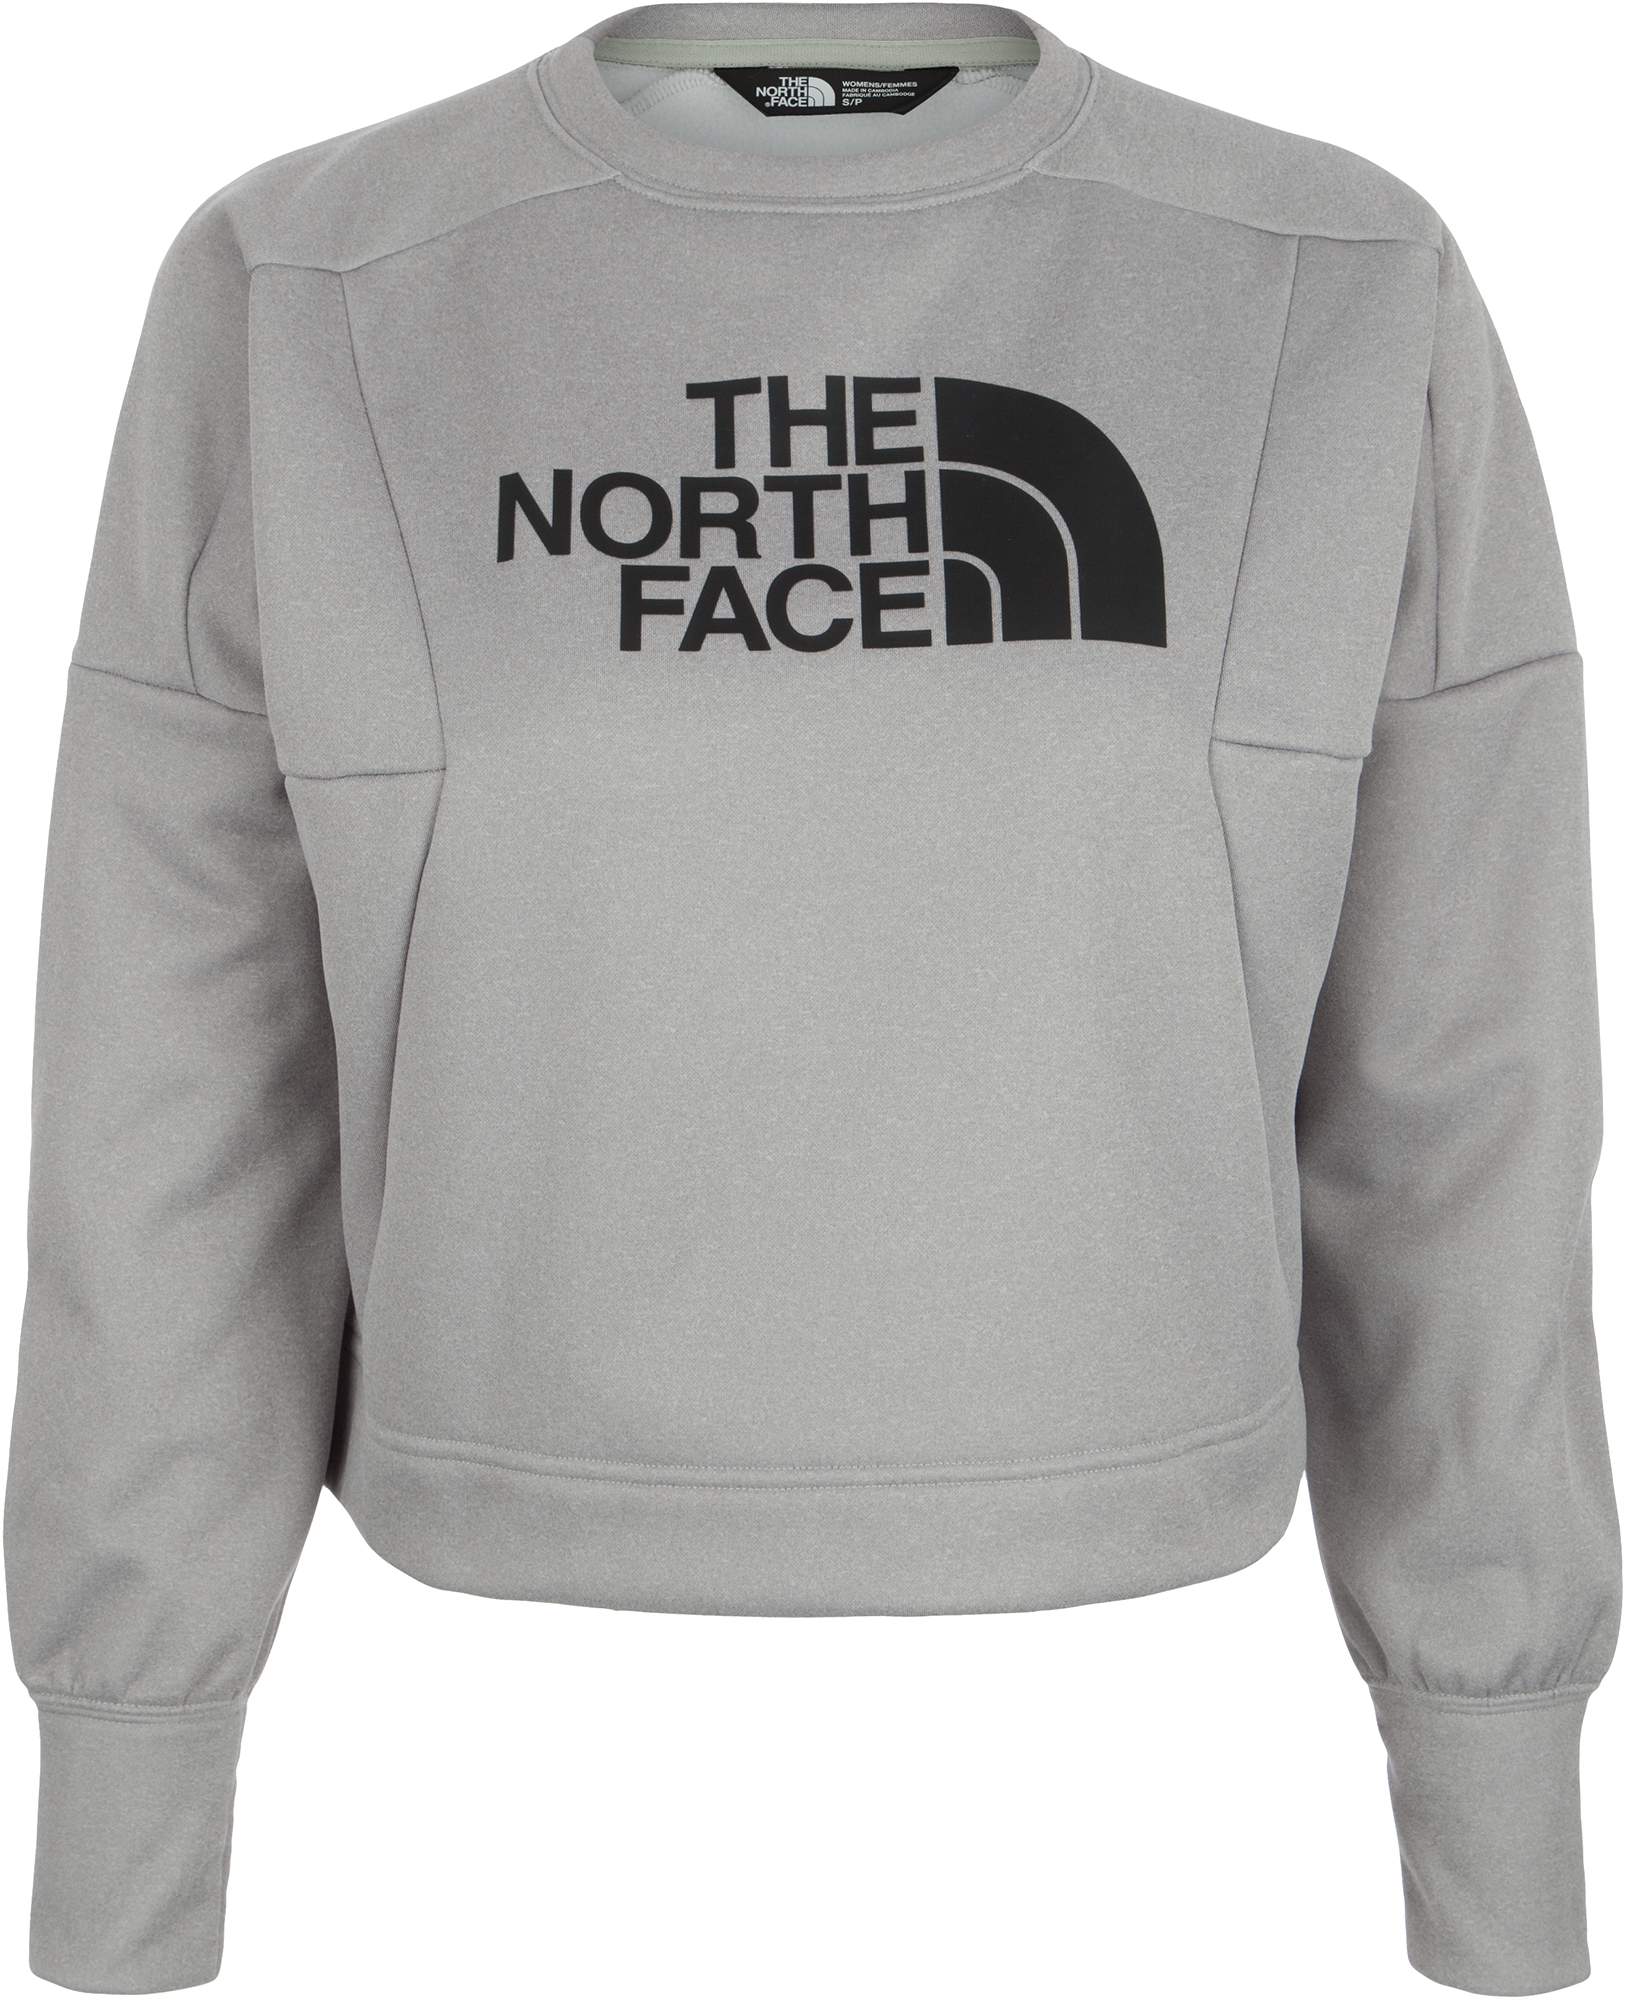 The North Face Джемпер женский The North Face Train N, размер 48 цена и фото